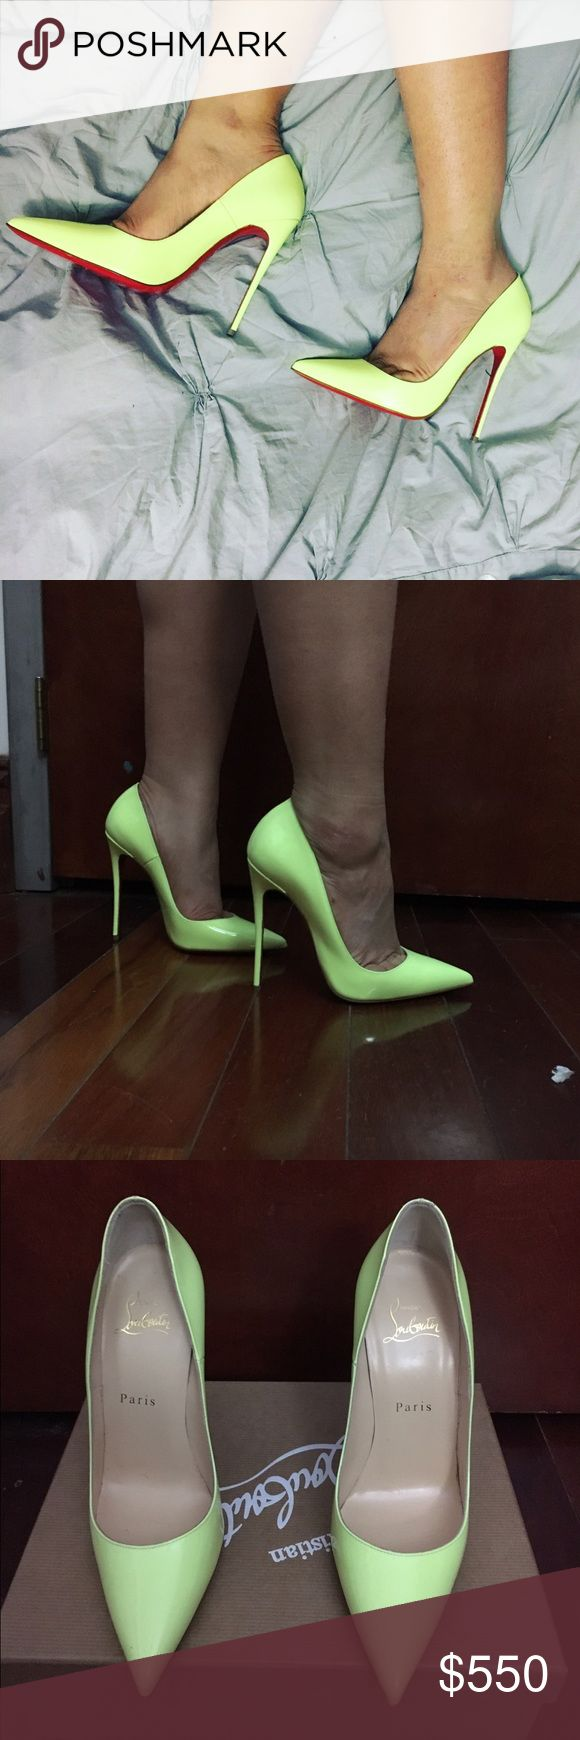 Christian Louboutin so Kate 120 neon pumps New in box, only tried on. Christian Louboutin Shoes Heels